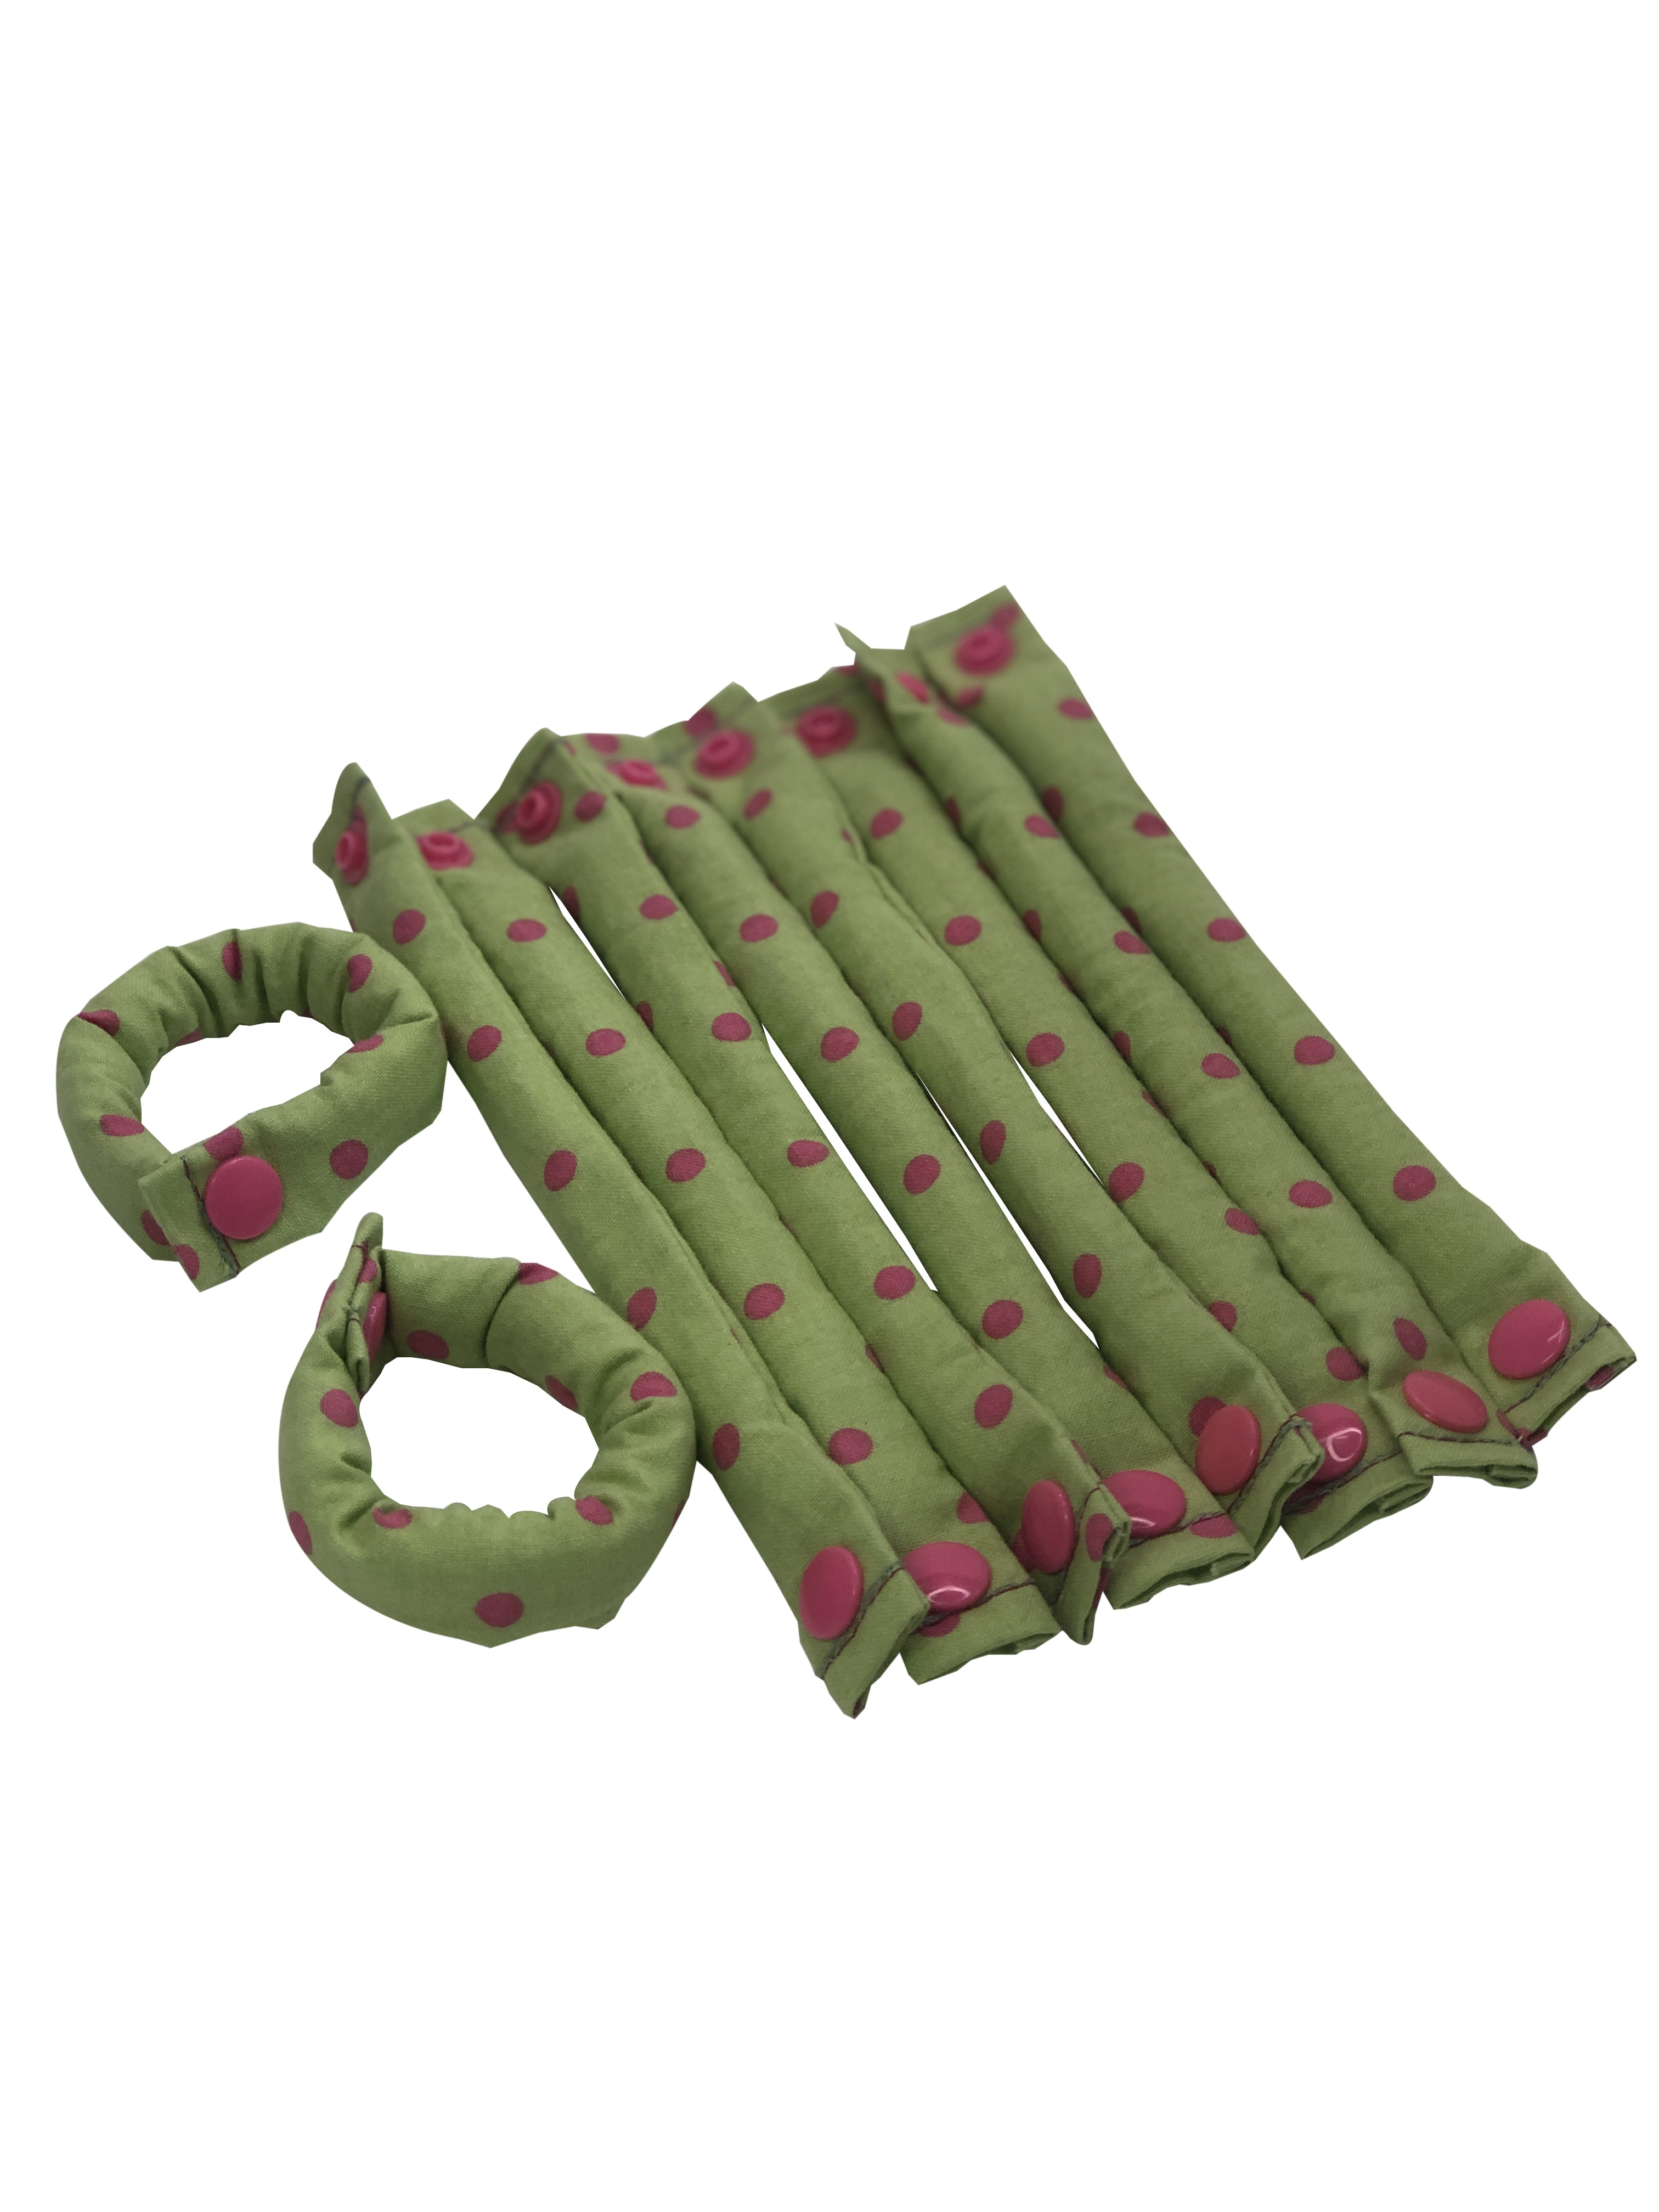 Green and Pink Polka Dot Fabric hair rollers - Hair Curlers - Hair Accessories